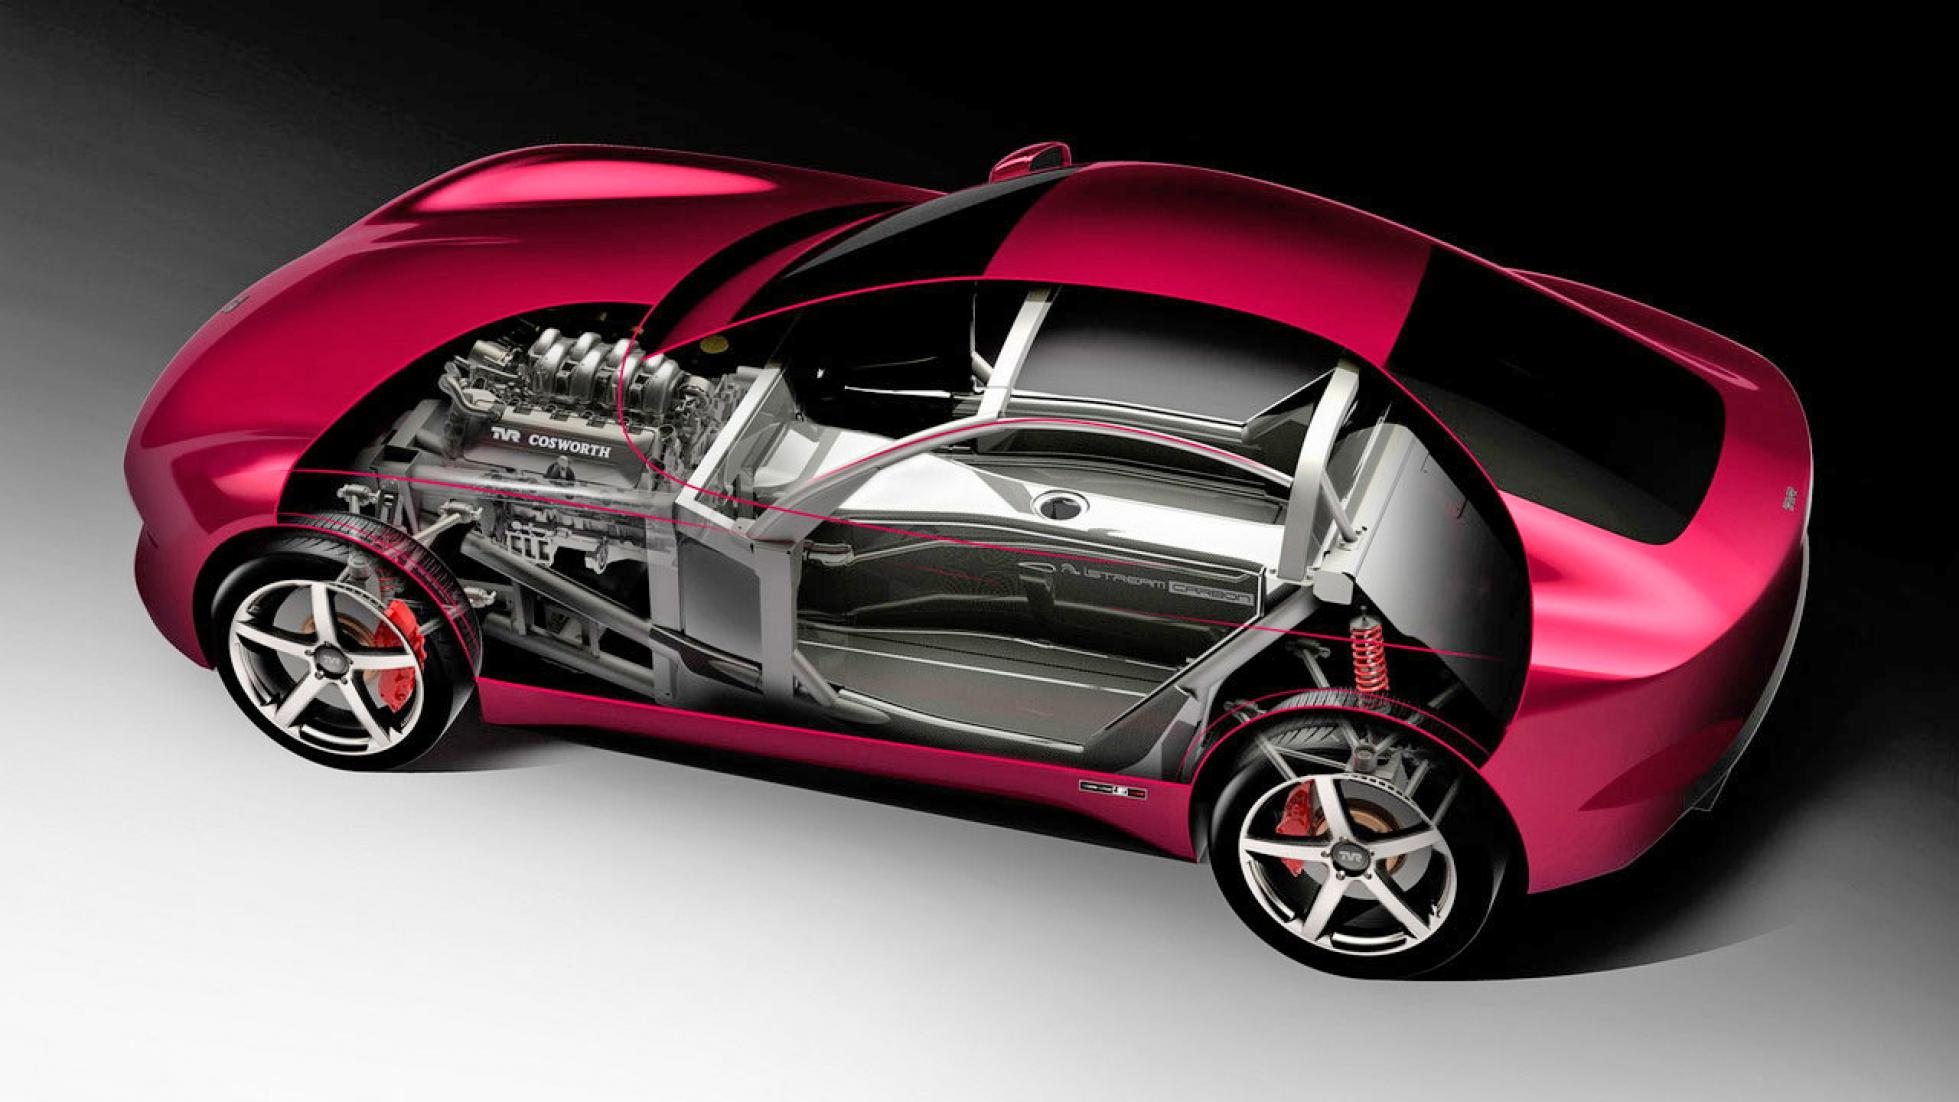 New TVR supercar concept